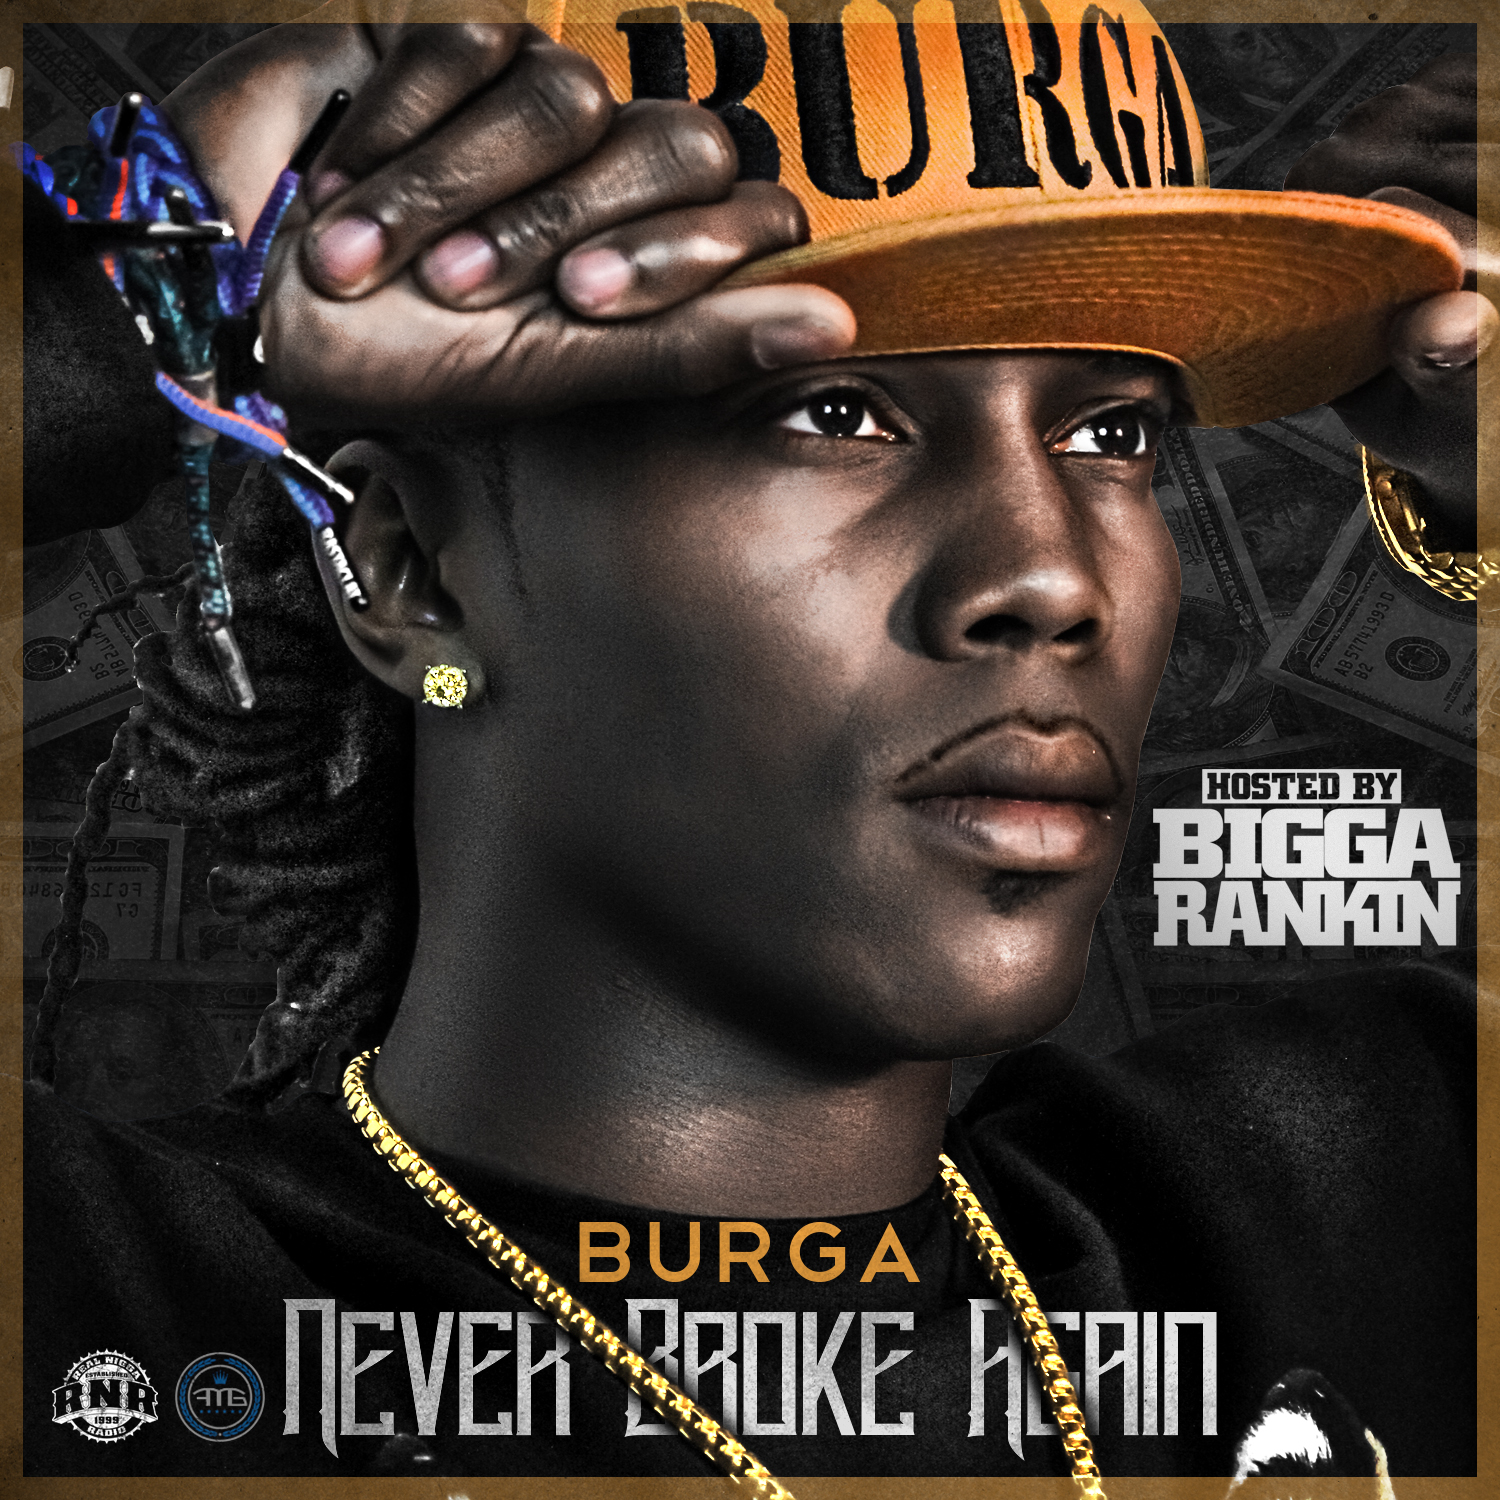 Burga Never Broke Again